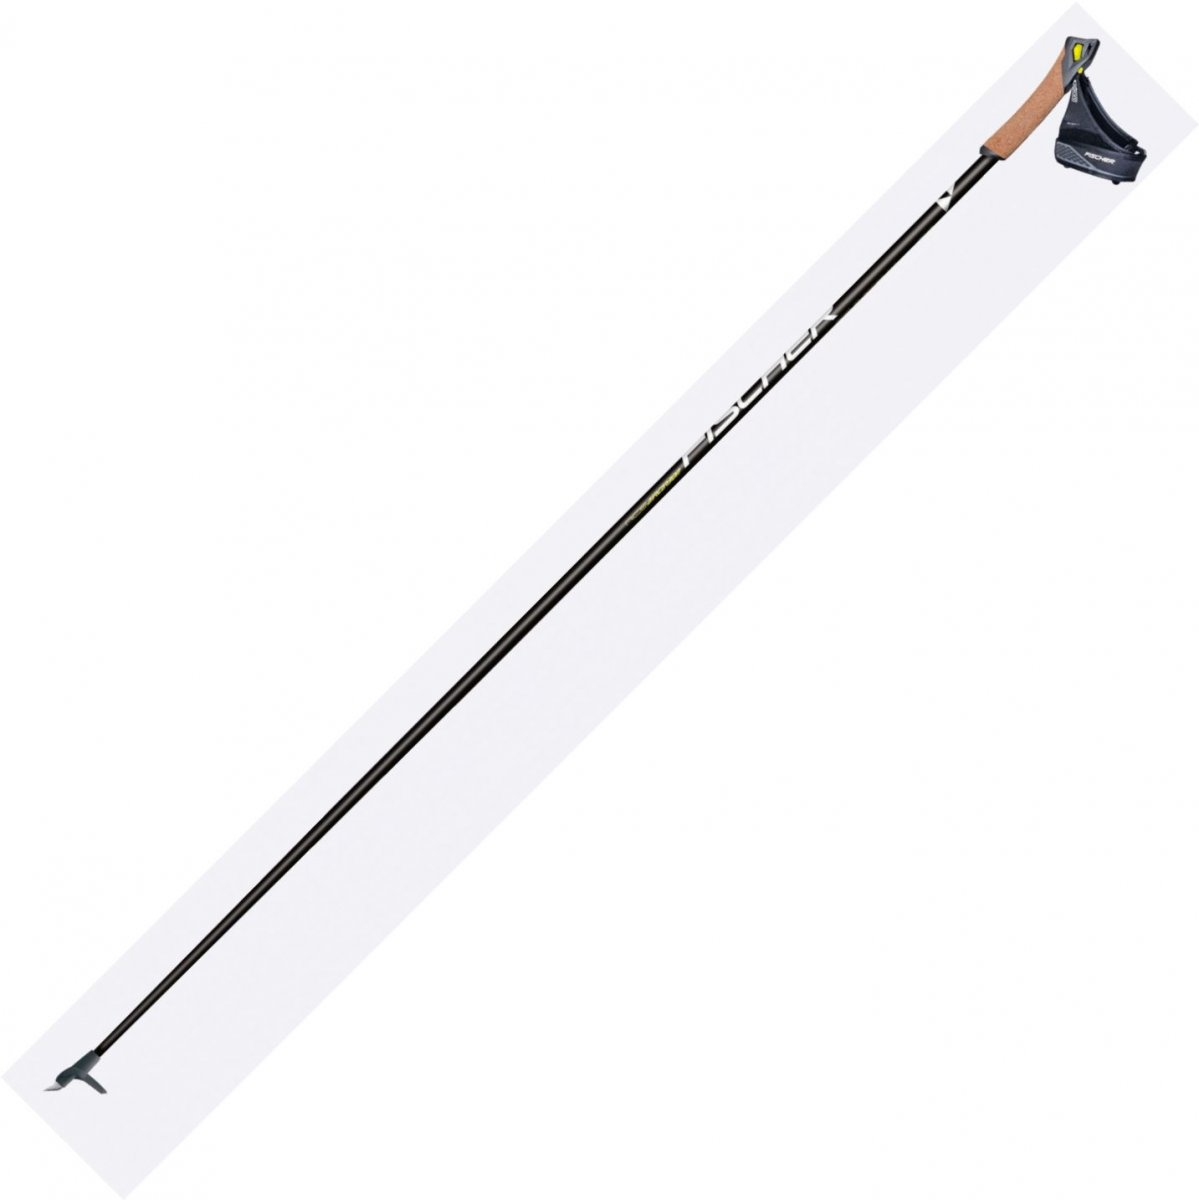 Fischer RSC Race Air Carbon Multitip pole